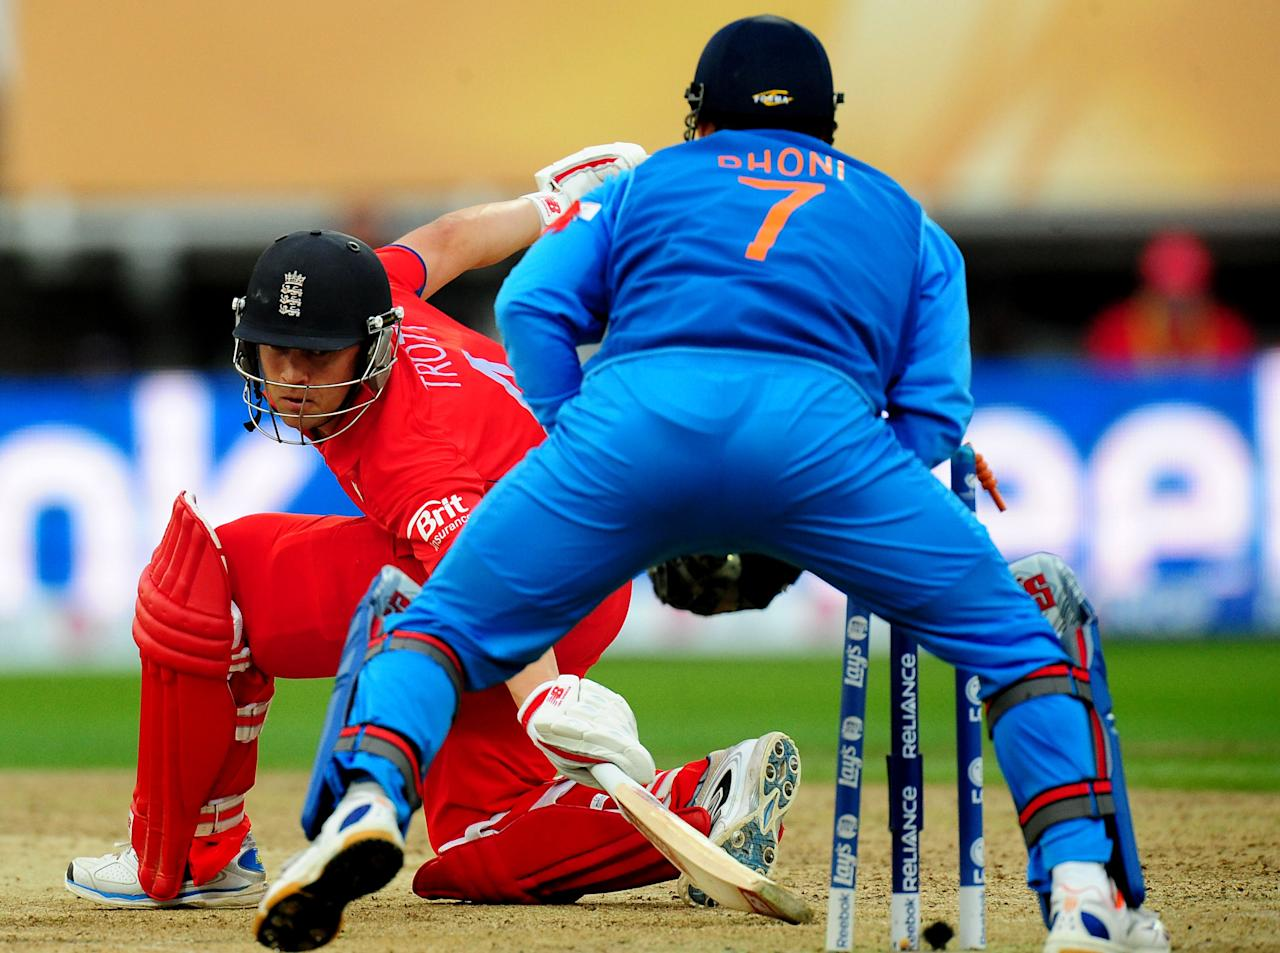 England's Jonathan Trott is stumped by Mahendra Dhoni for 20 during the ICC Champions Trophy Final at Edgbaston, Birmingham.